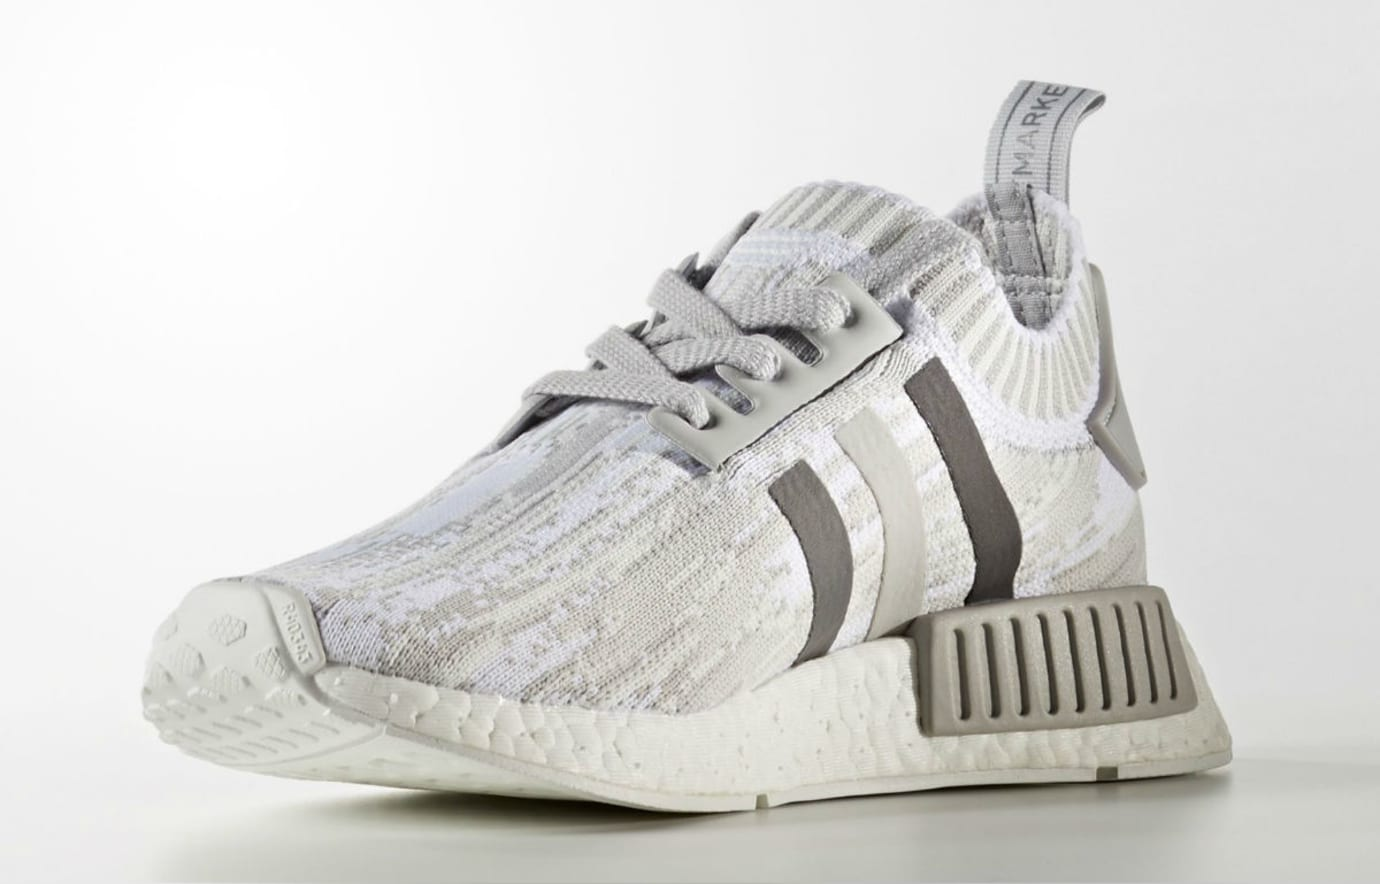 65a627956 Adidas NMD Japan White Camo Release Date Medial